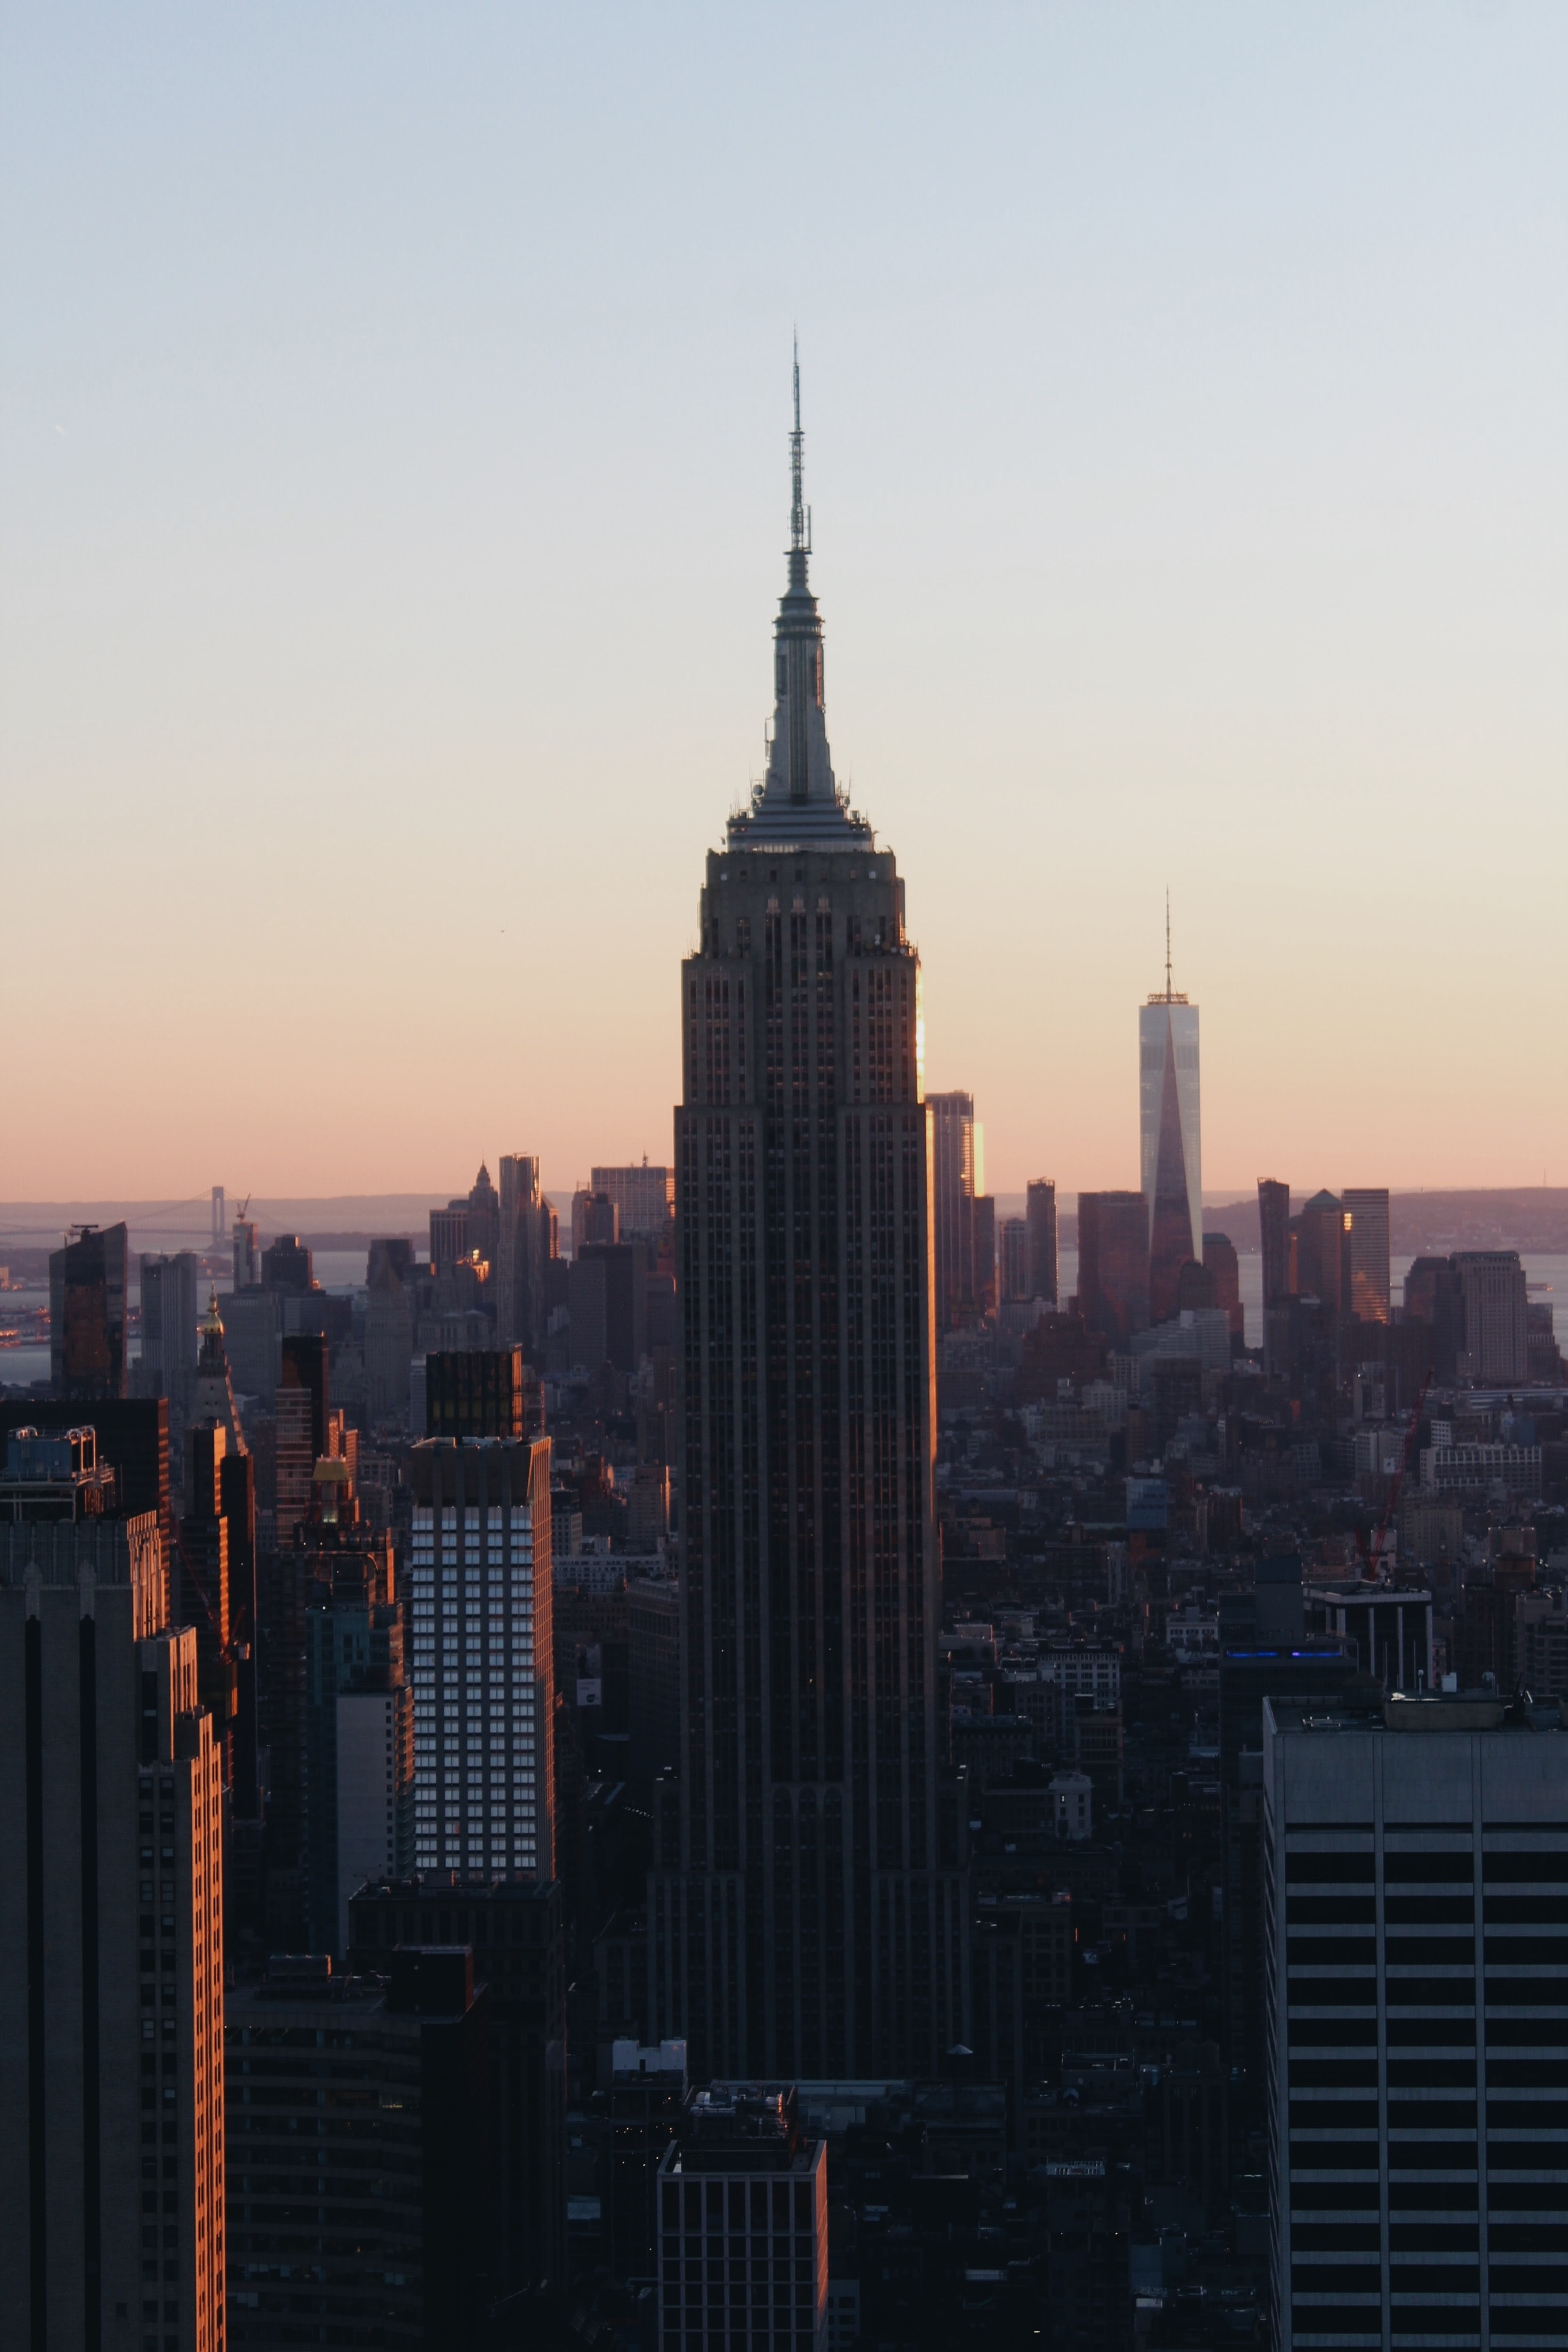 Empire State Building in NYC during daytime